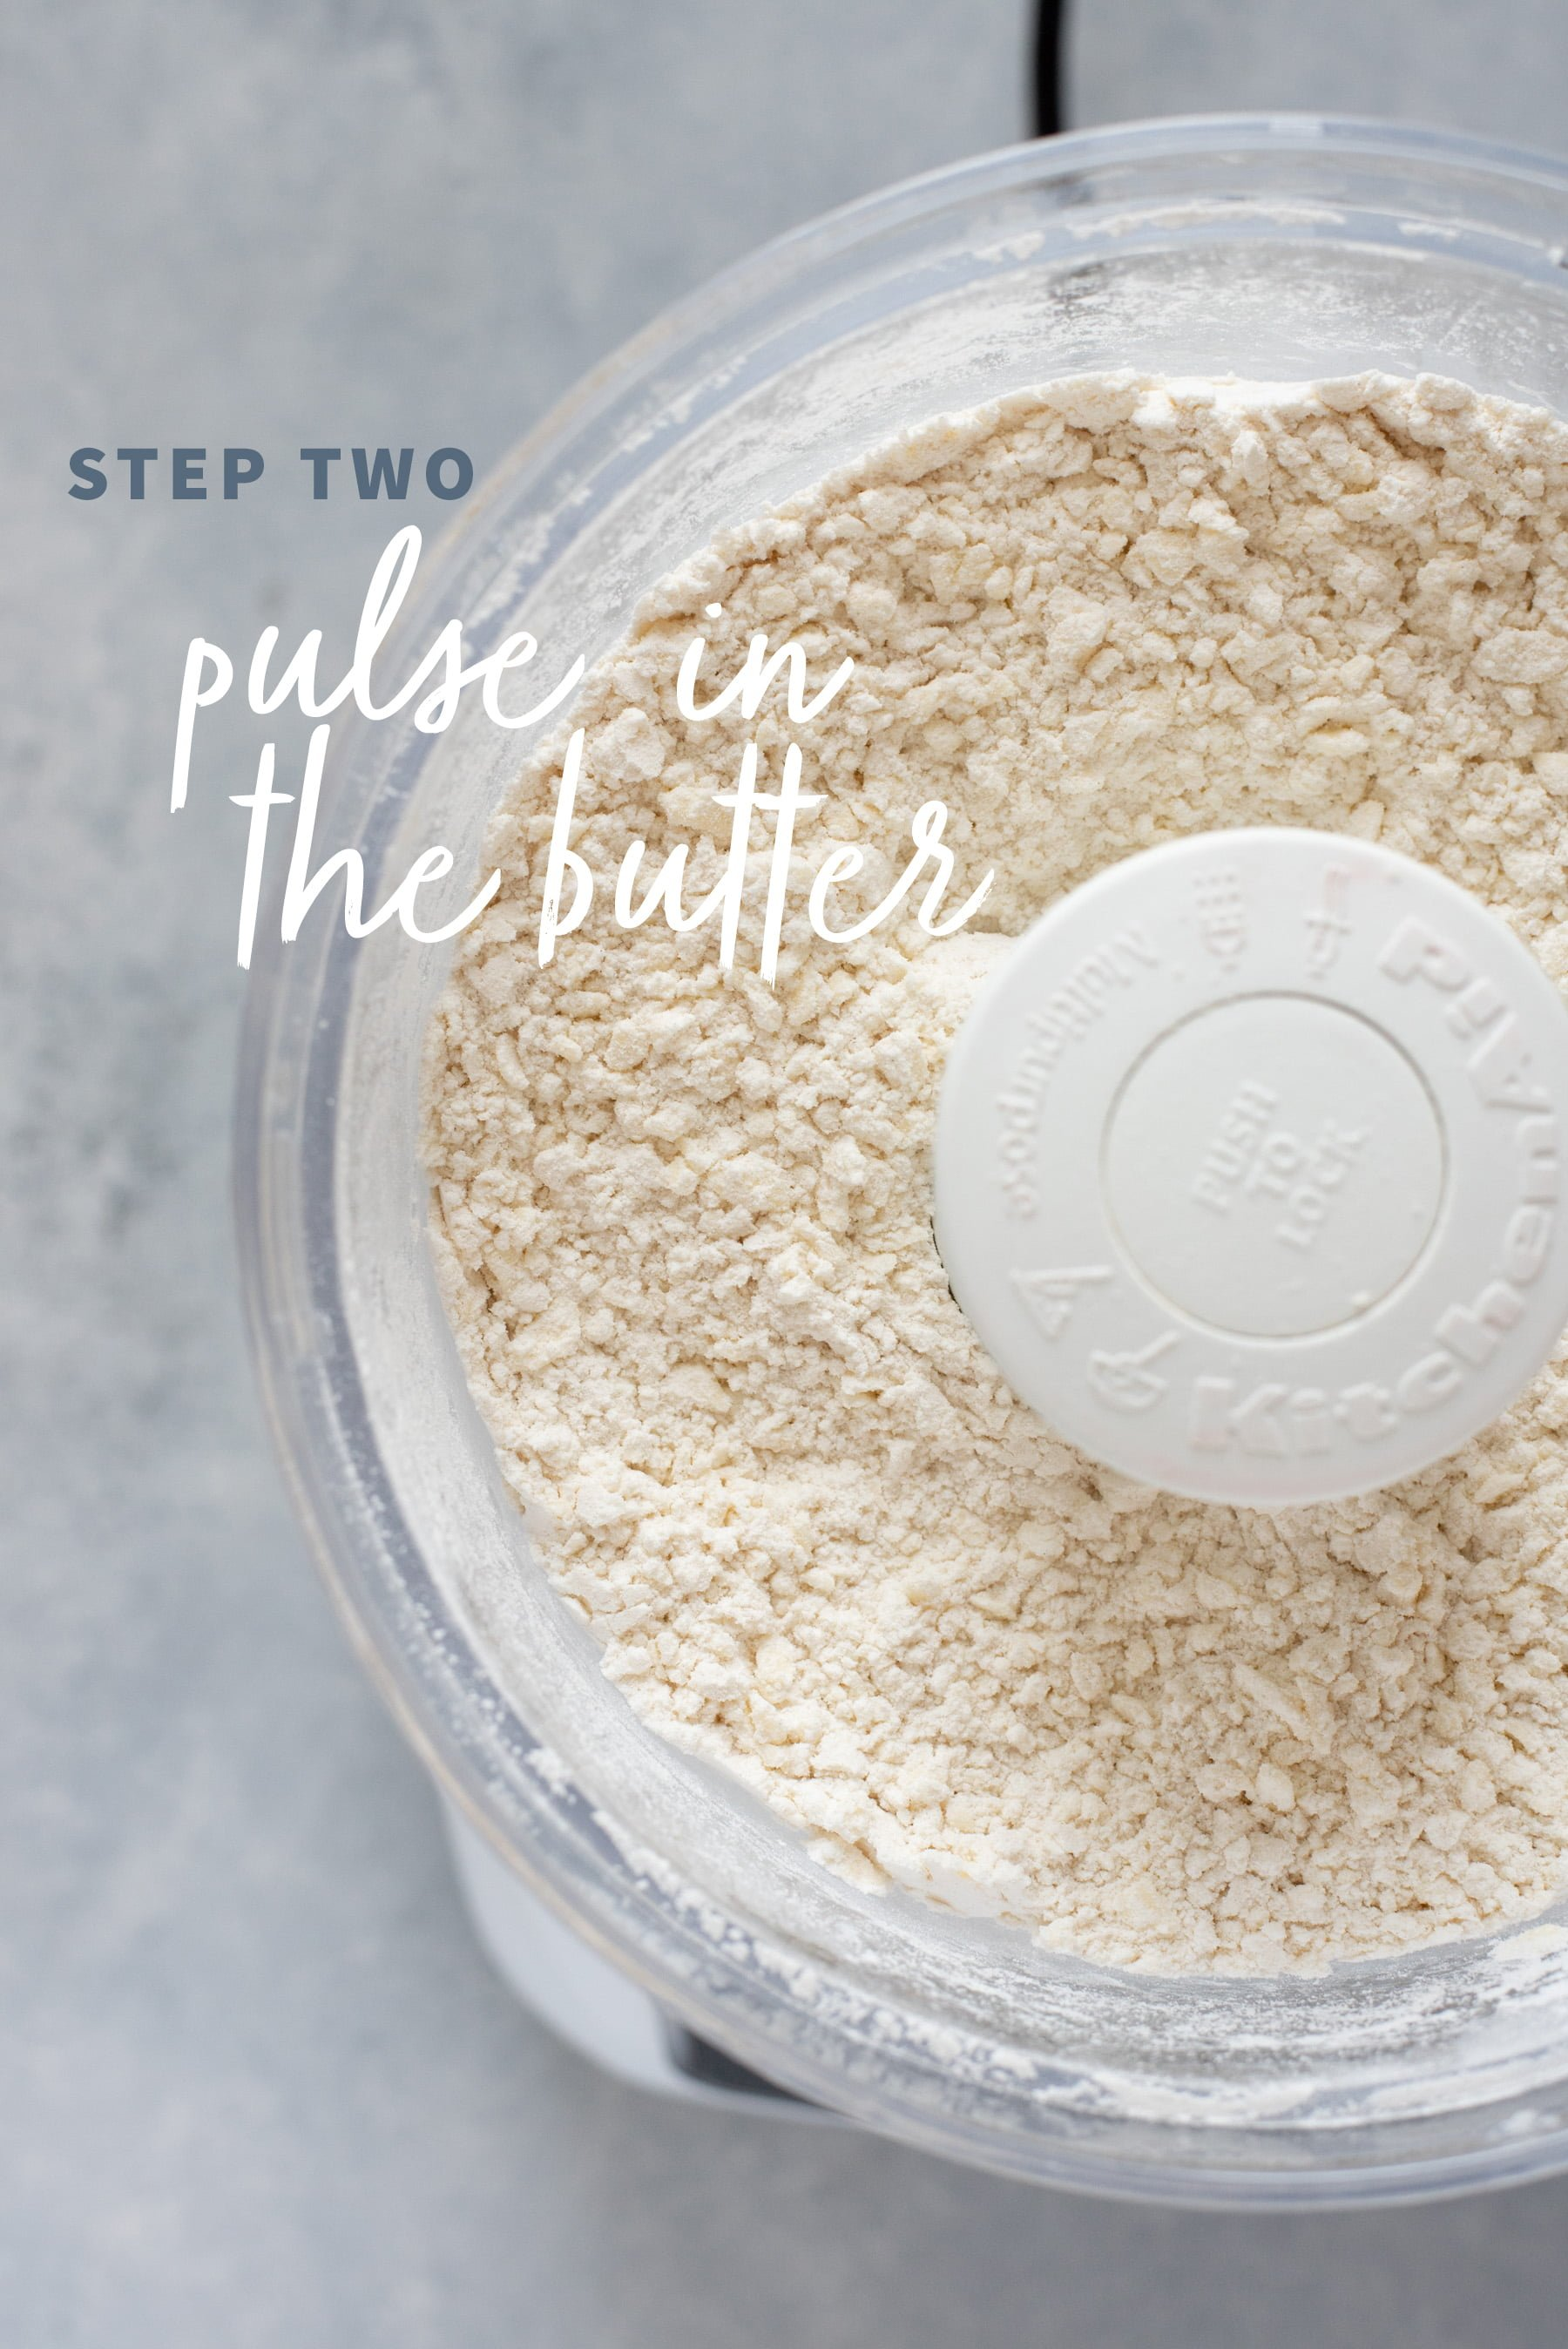 Pulsing butter into the dry ingredients for pie crust dough in the bowl of a food processor